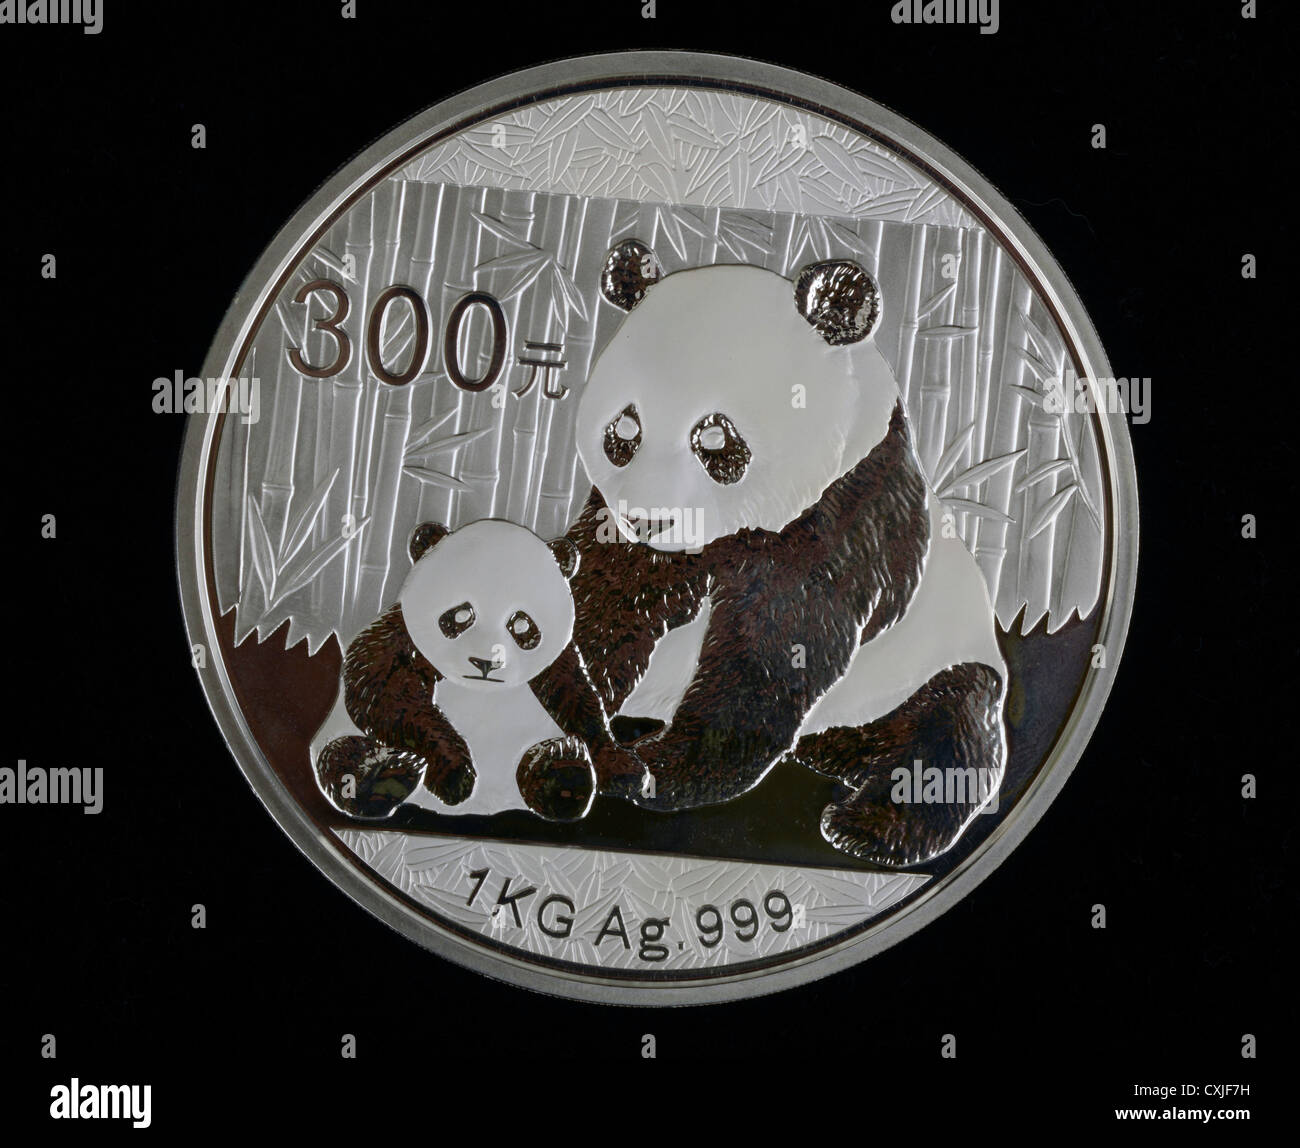 Chinese Silver Panda, a series of silver bullion coins issued by the People's Republic of China.  2012 is 30th - Stock Image